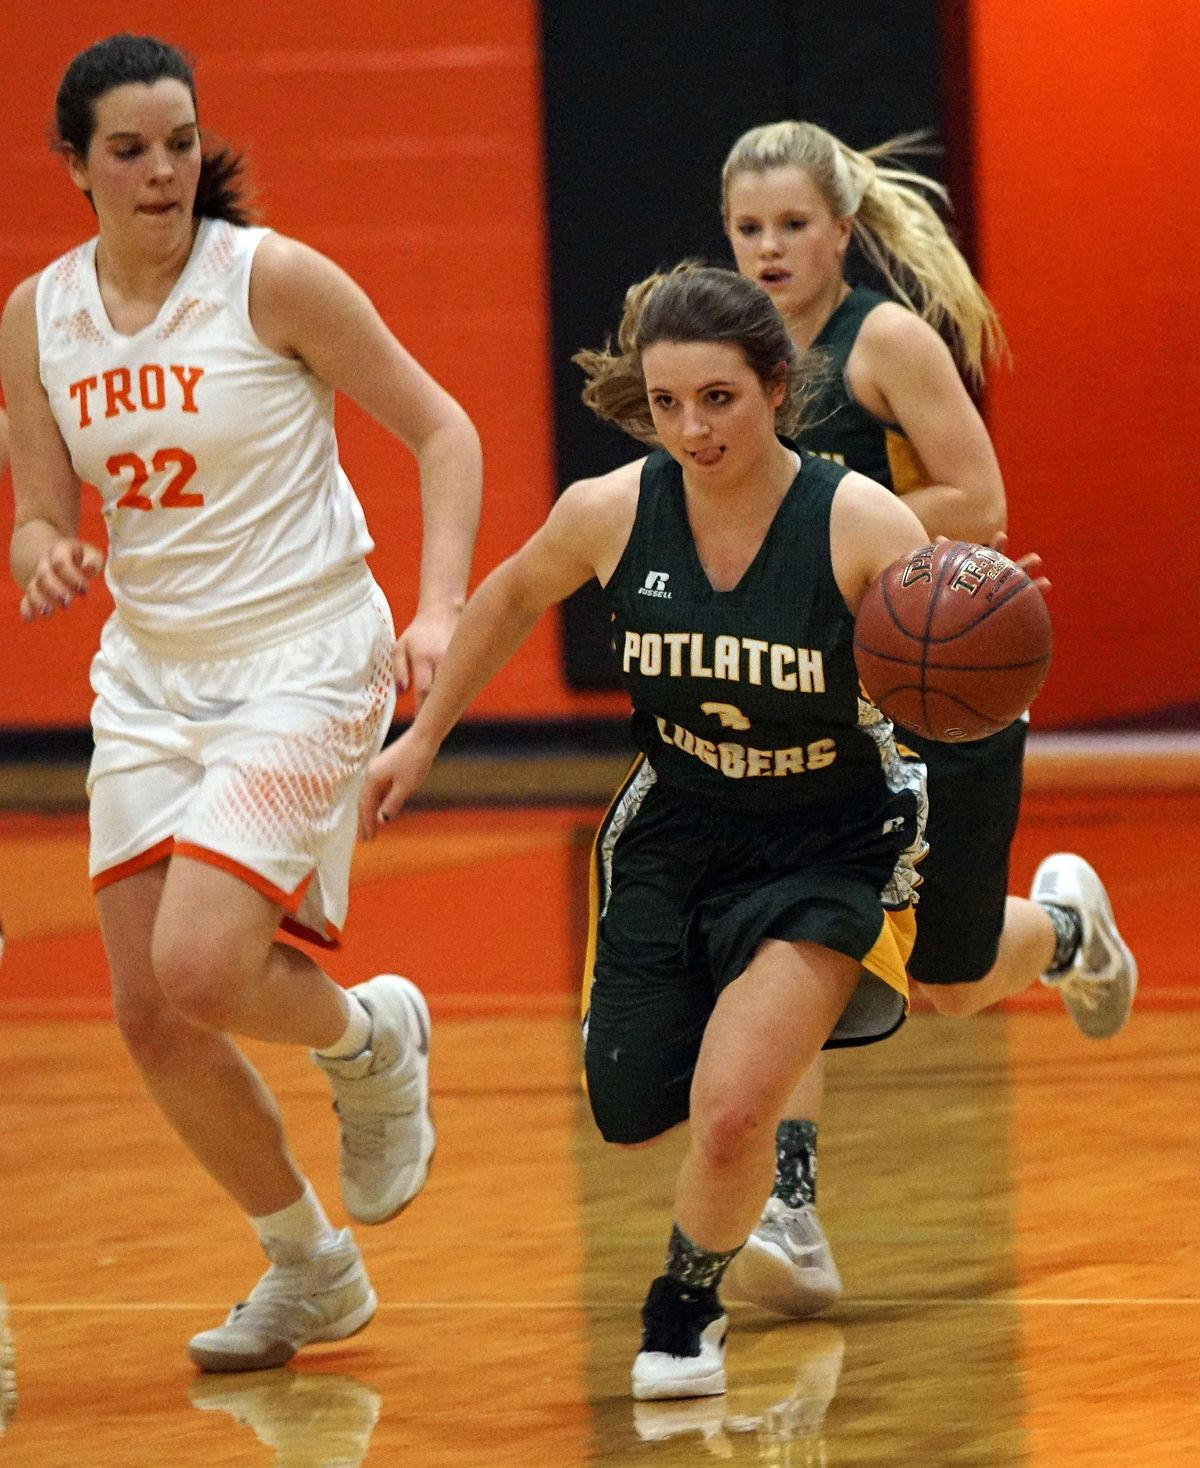 troy girls The wyalusing boys' cross country team beat troy and wellsboro on wednesday, while the troy girls picked up a pair of wins.